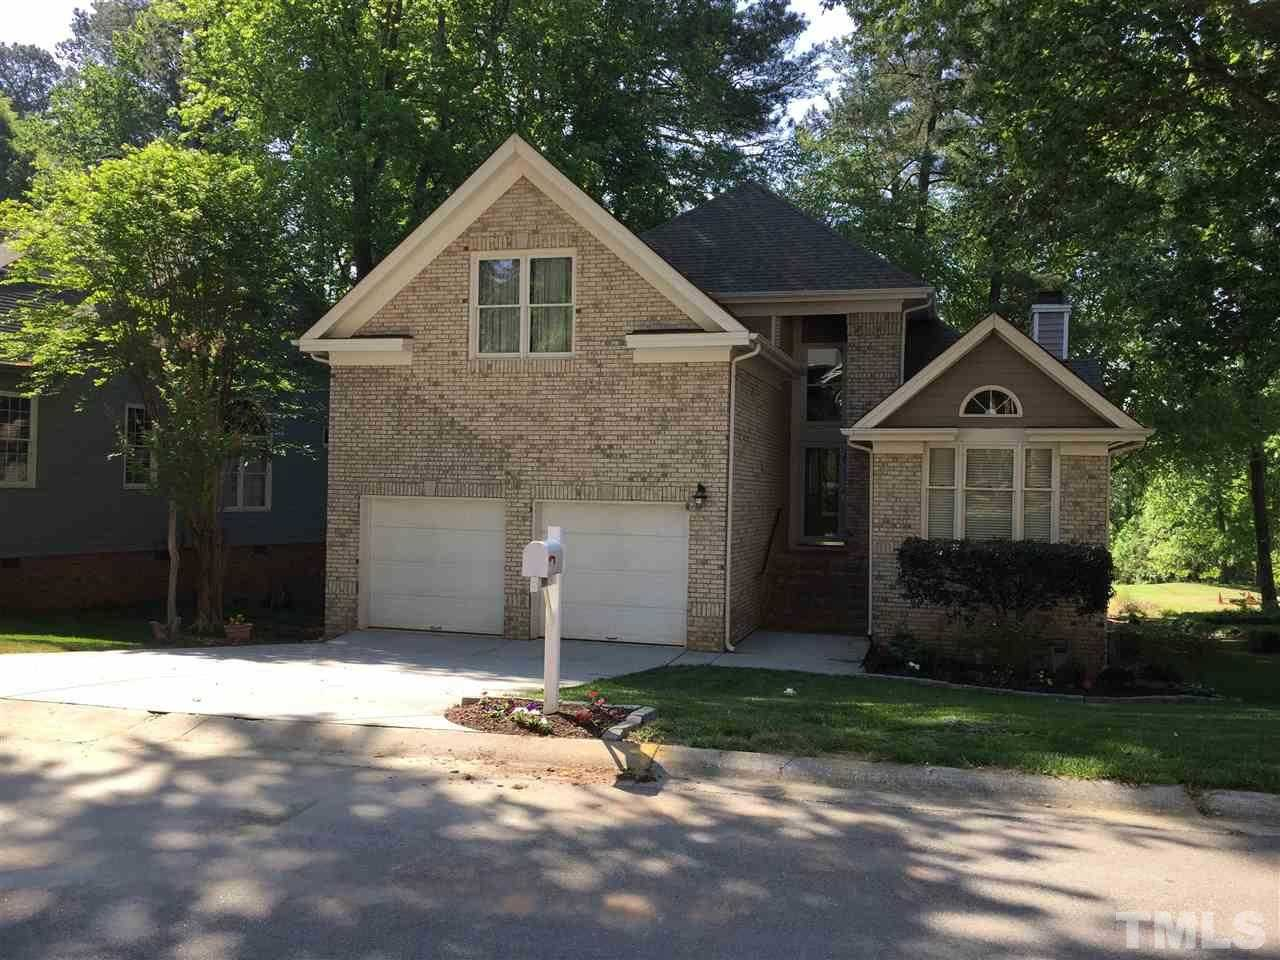 $379,900 - 3Br/3Ba -  for Sale in Wildwood Green, Raleigh